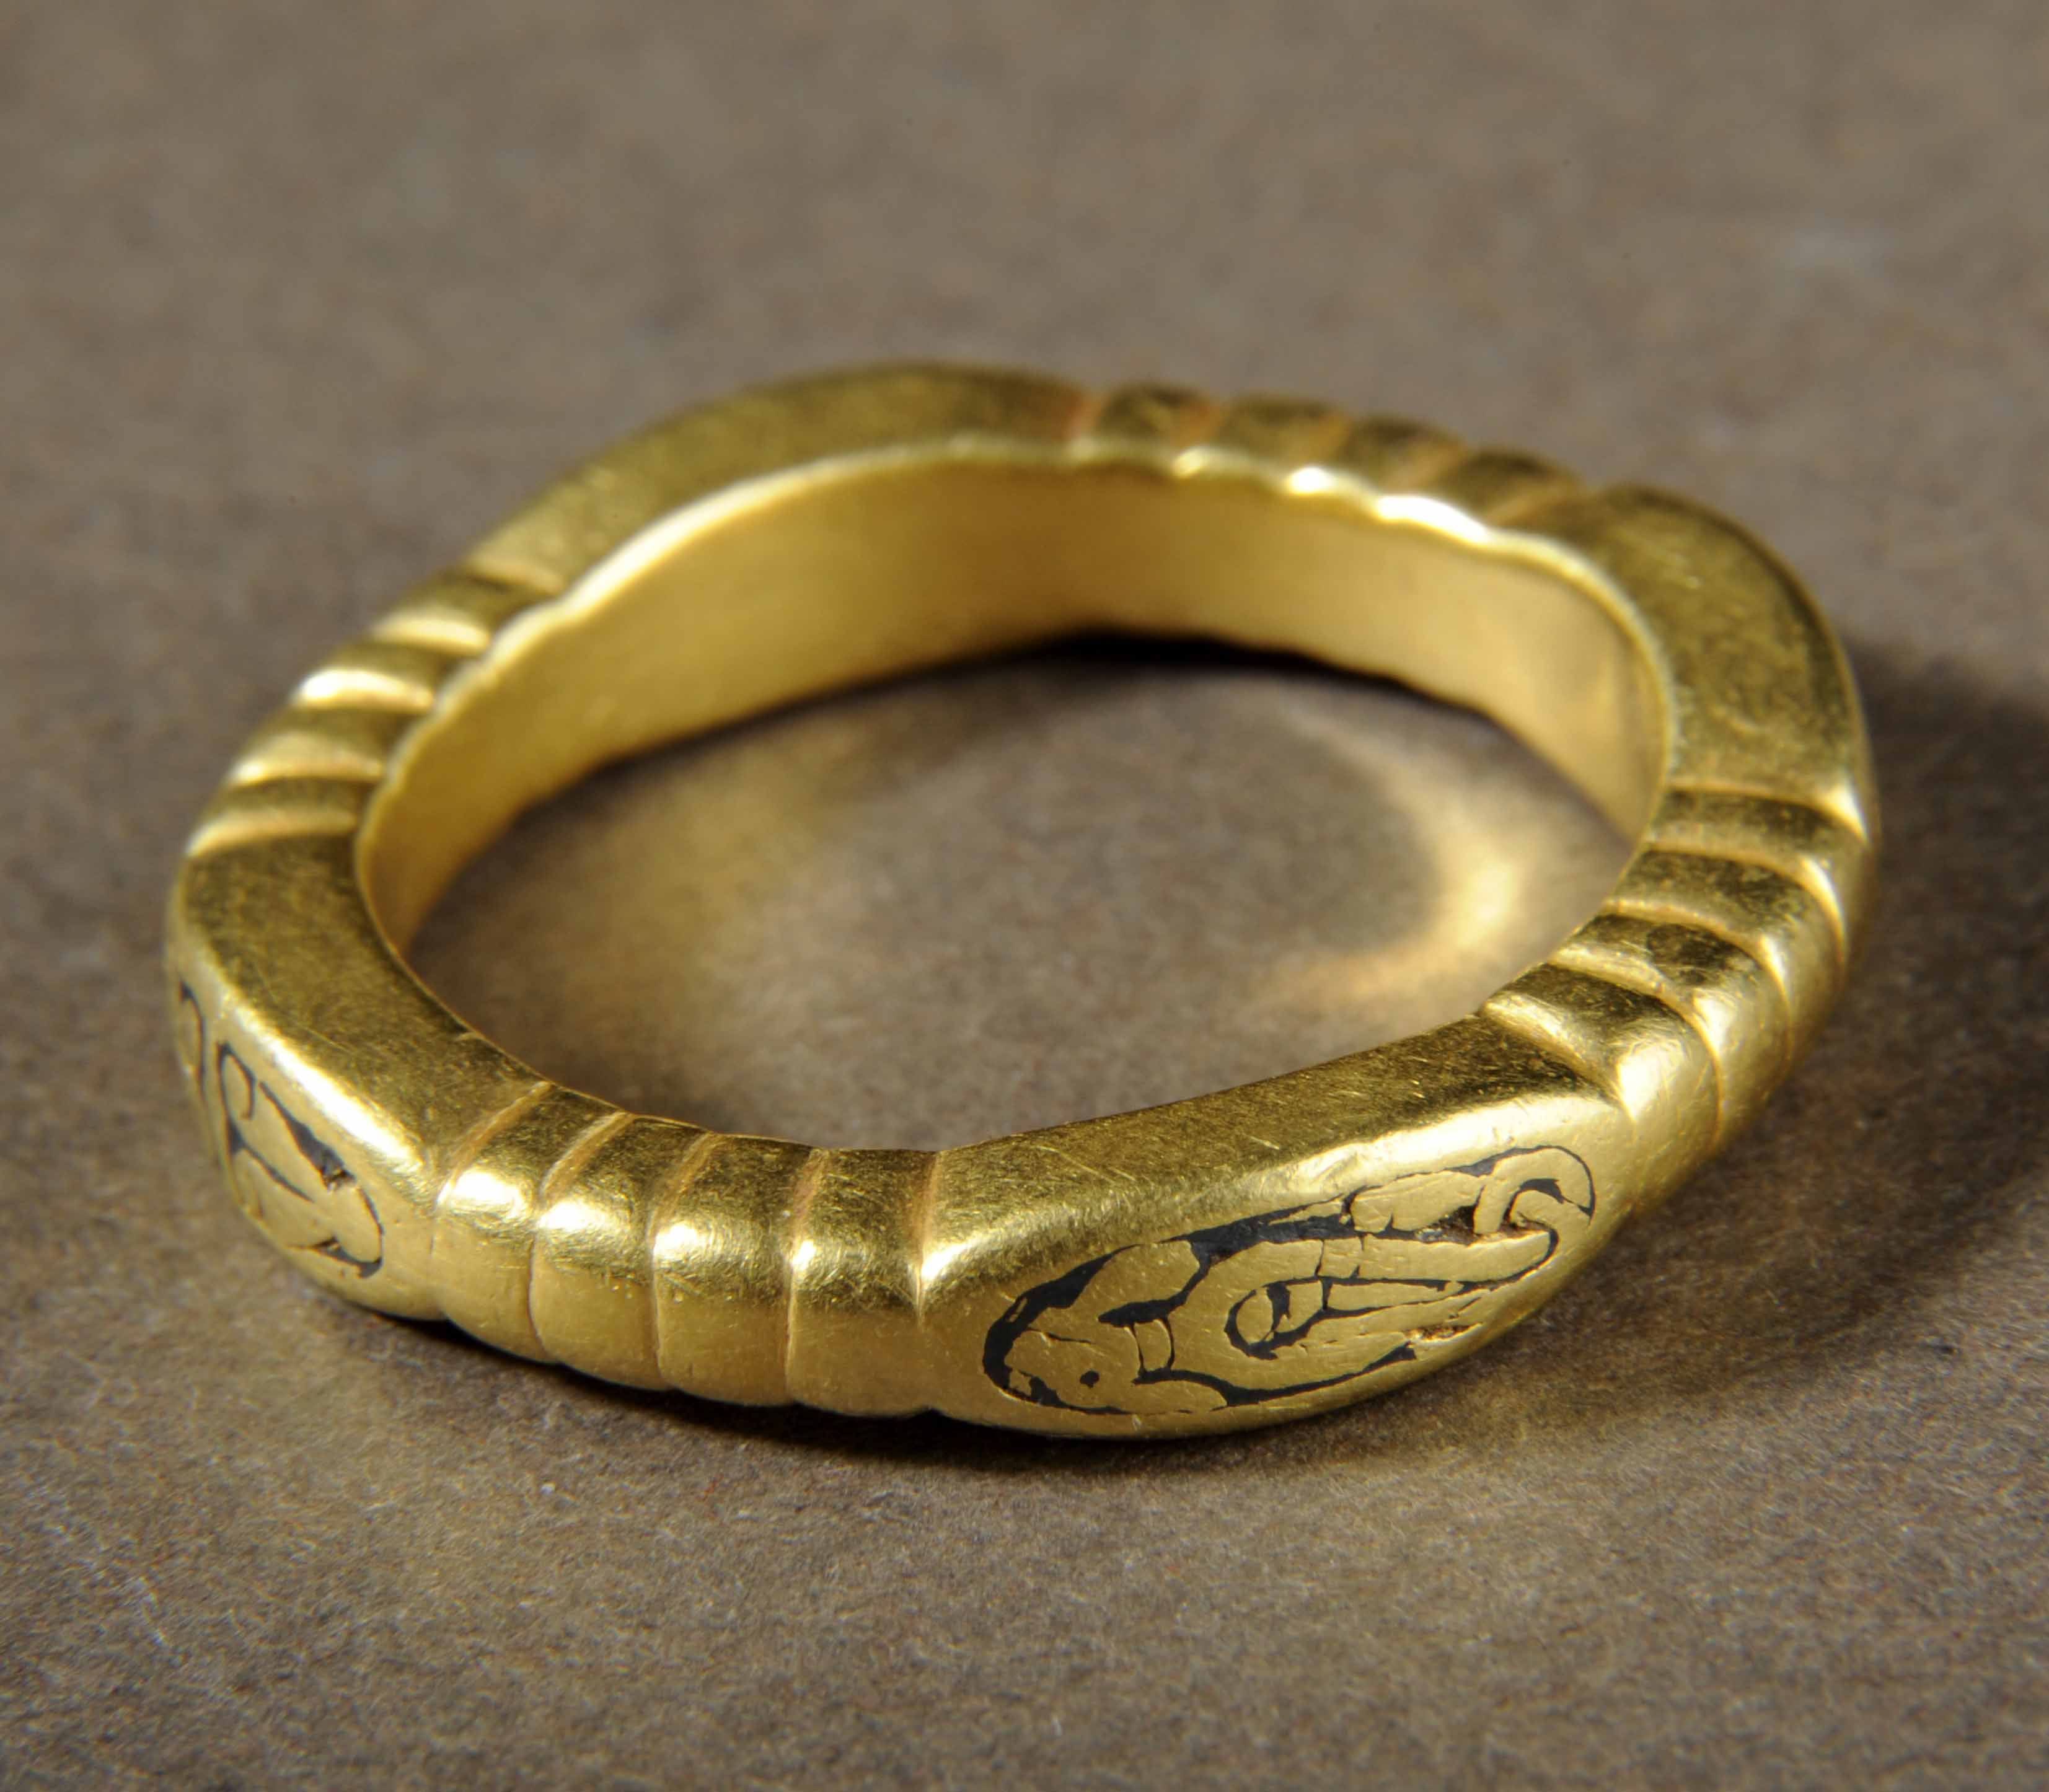 Gold ring with thick band in a rough square shape with a black design on each rounded corner.